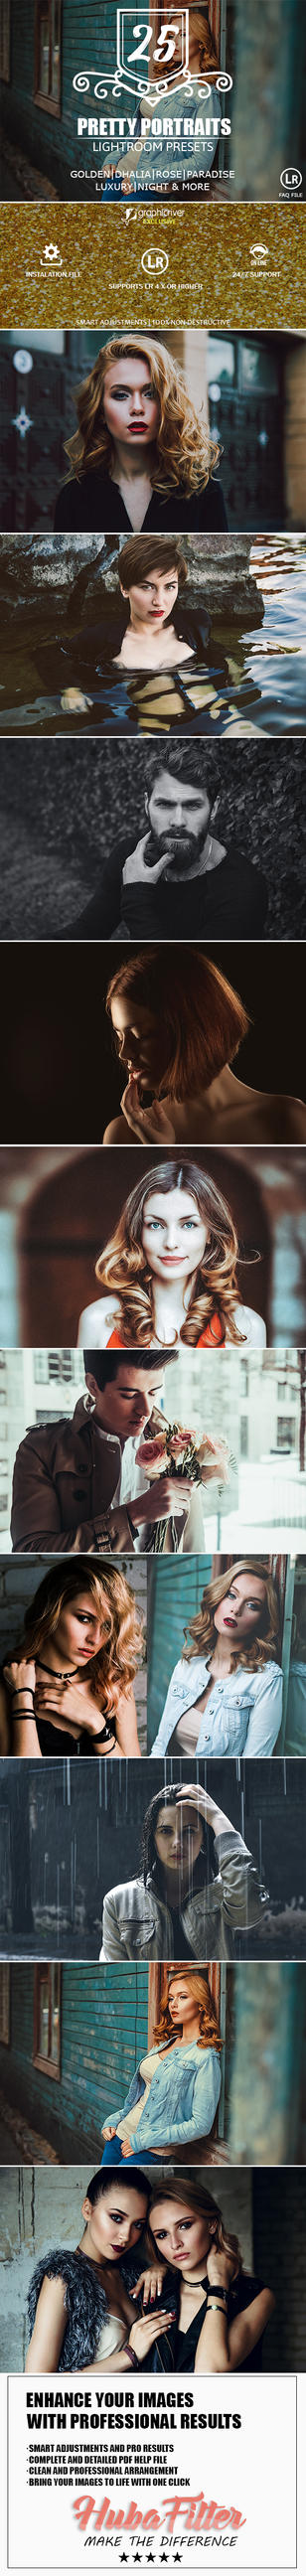 25 Pretty Portraits Lightroom Presets by hubafilter